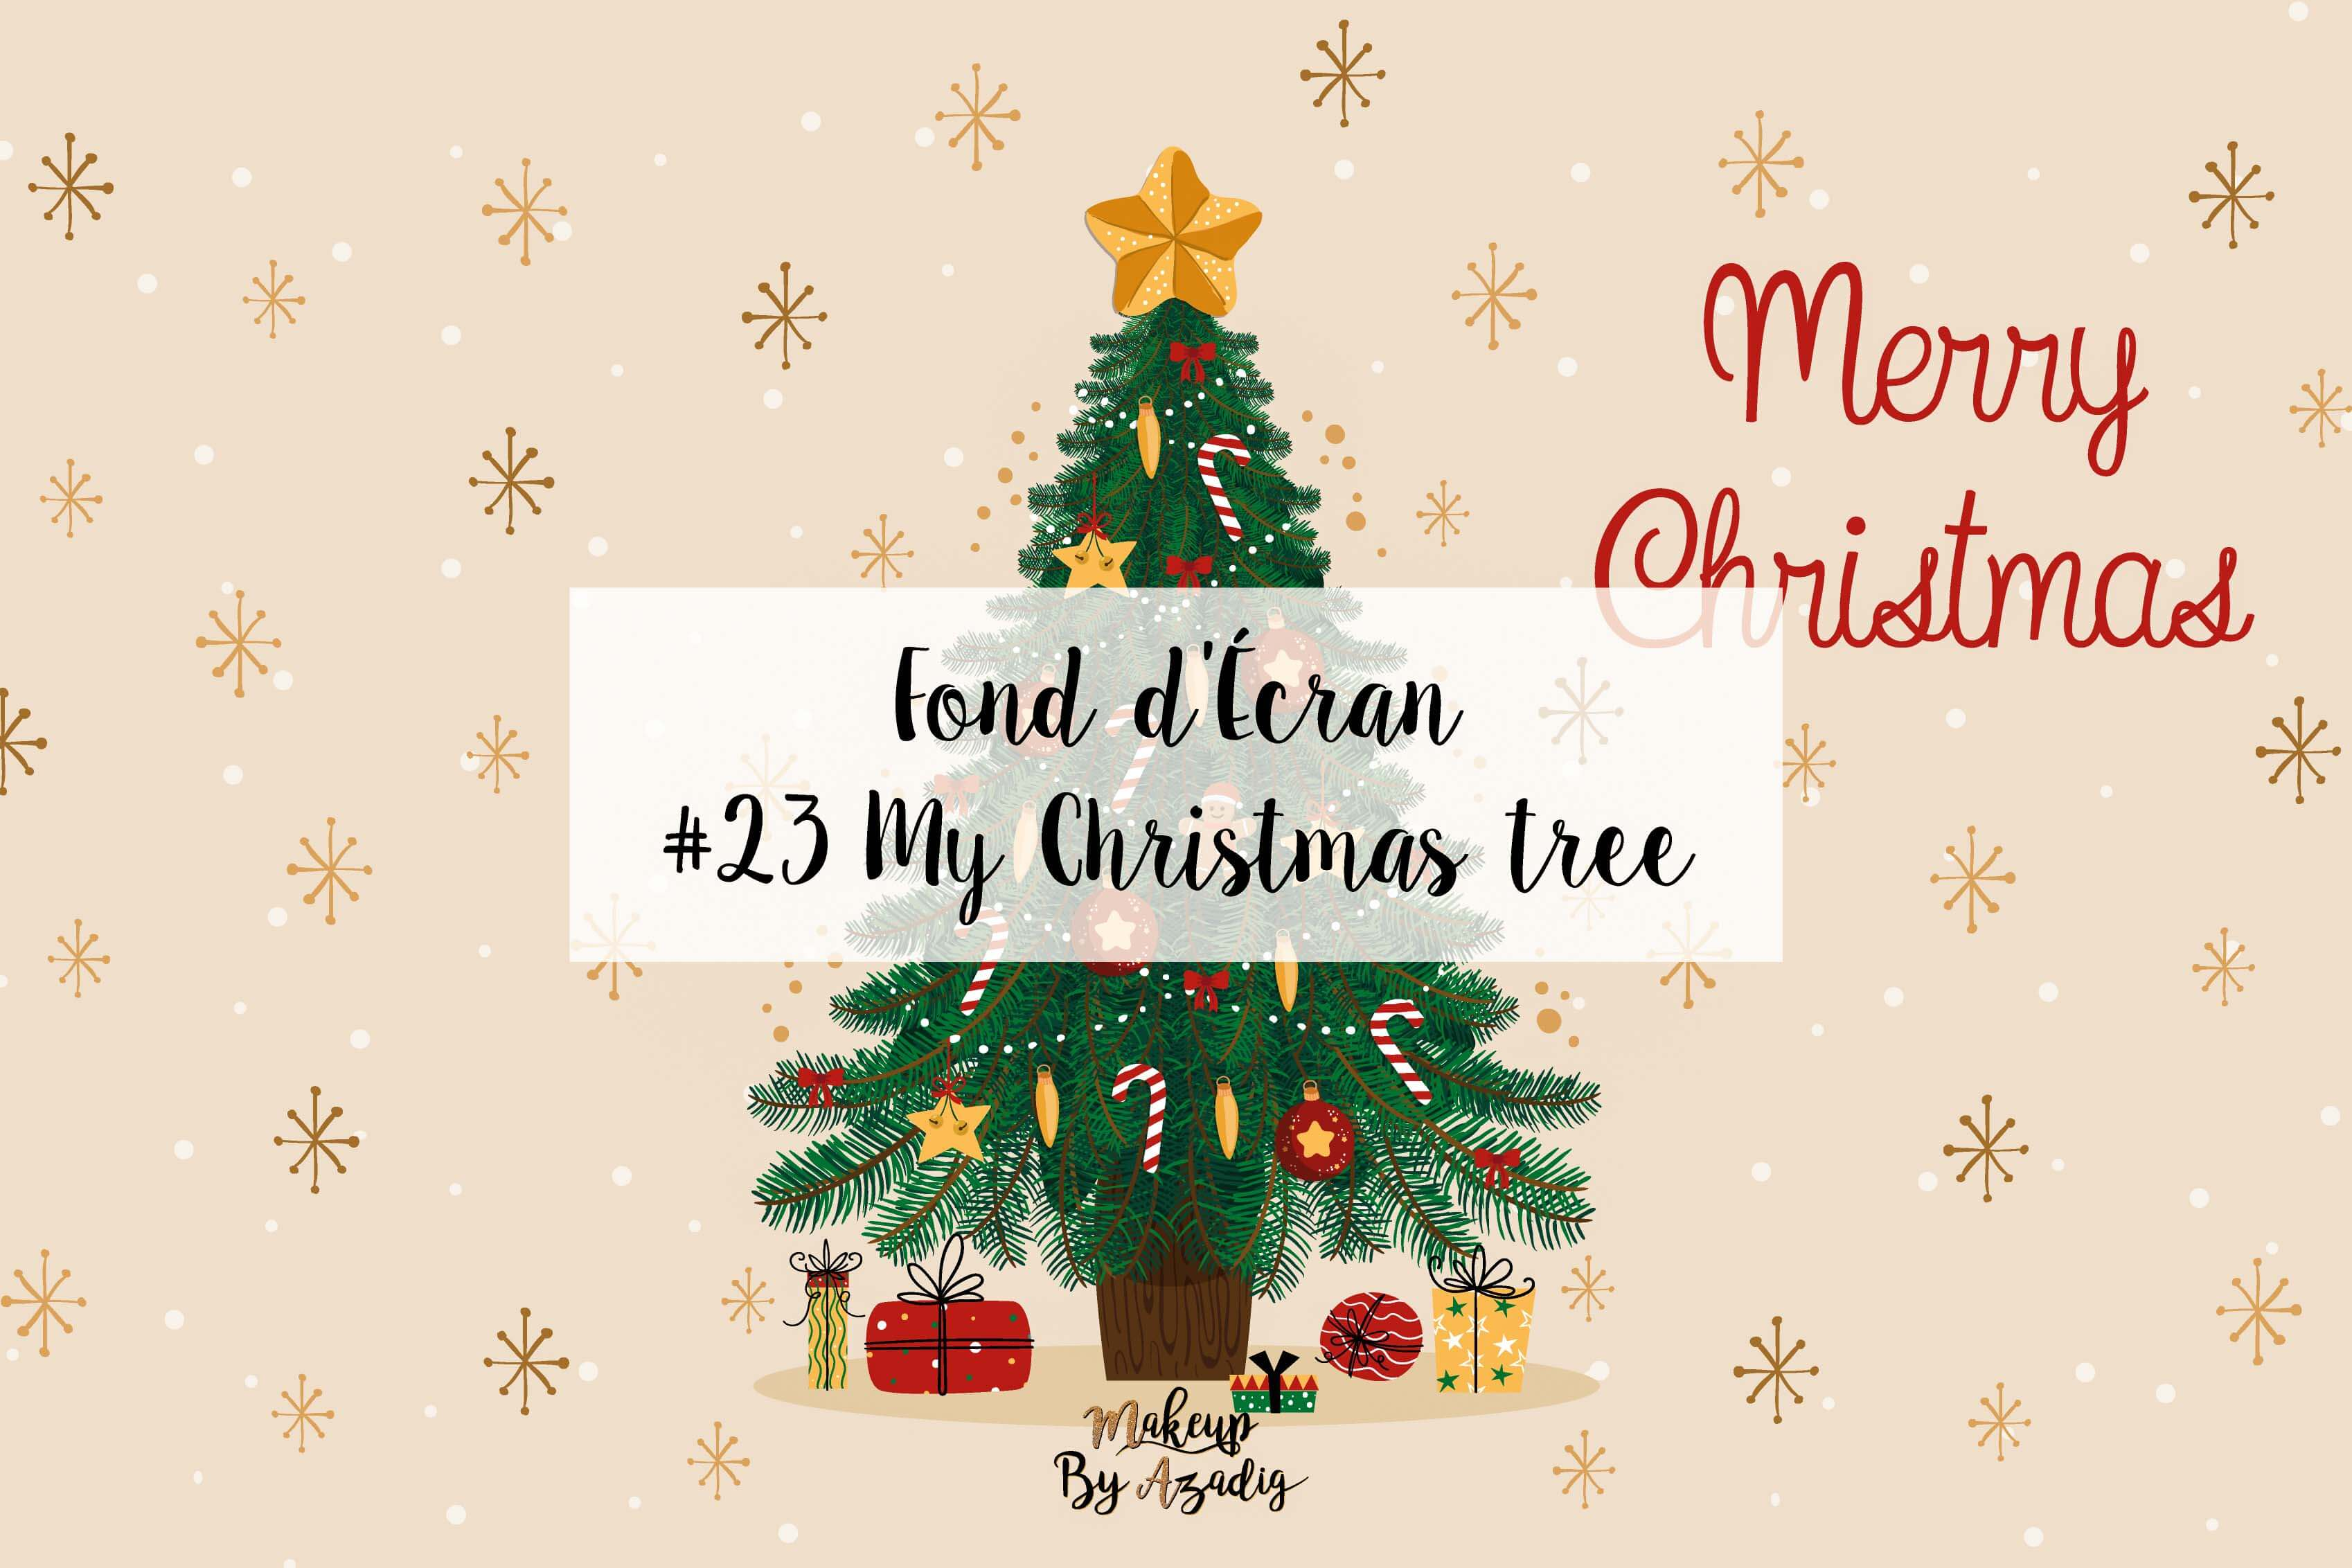 fond-decran-wallpaper-christmas-noel-tree-christmastree-ordinateur-iphone-samsung-mac-macbook-imac-pc-makeupbyazadig-miniature